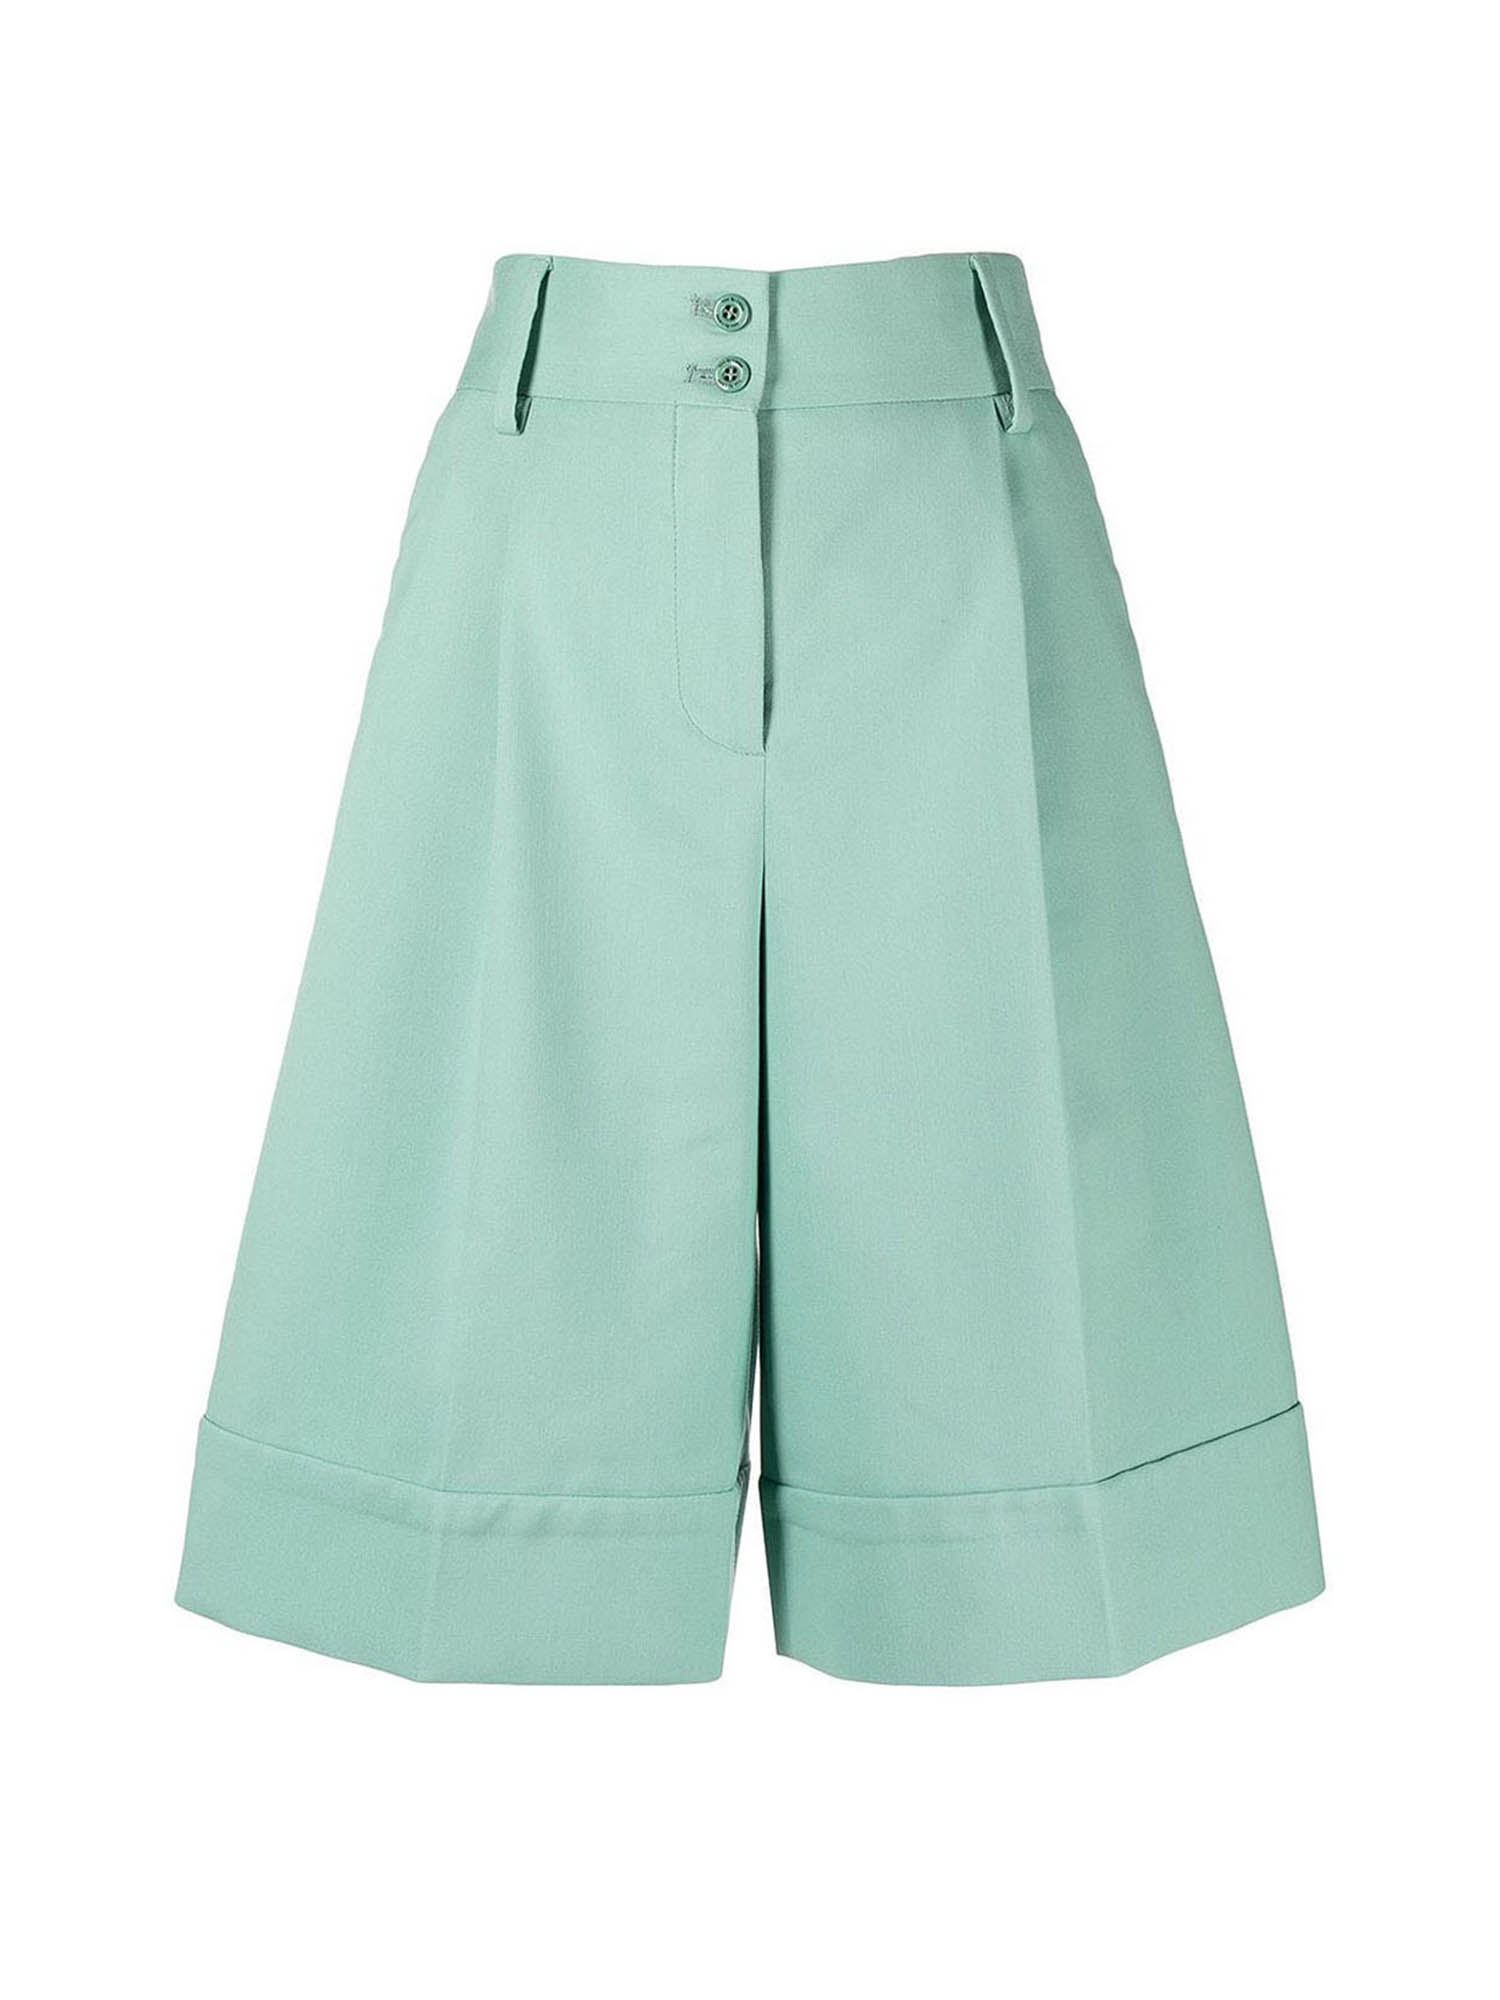 See By Chloé FLARED BERMUDA SHORTS IN BERYL GREEN